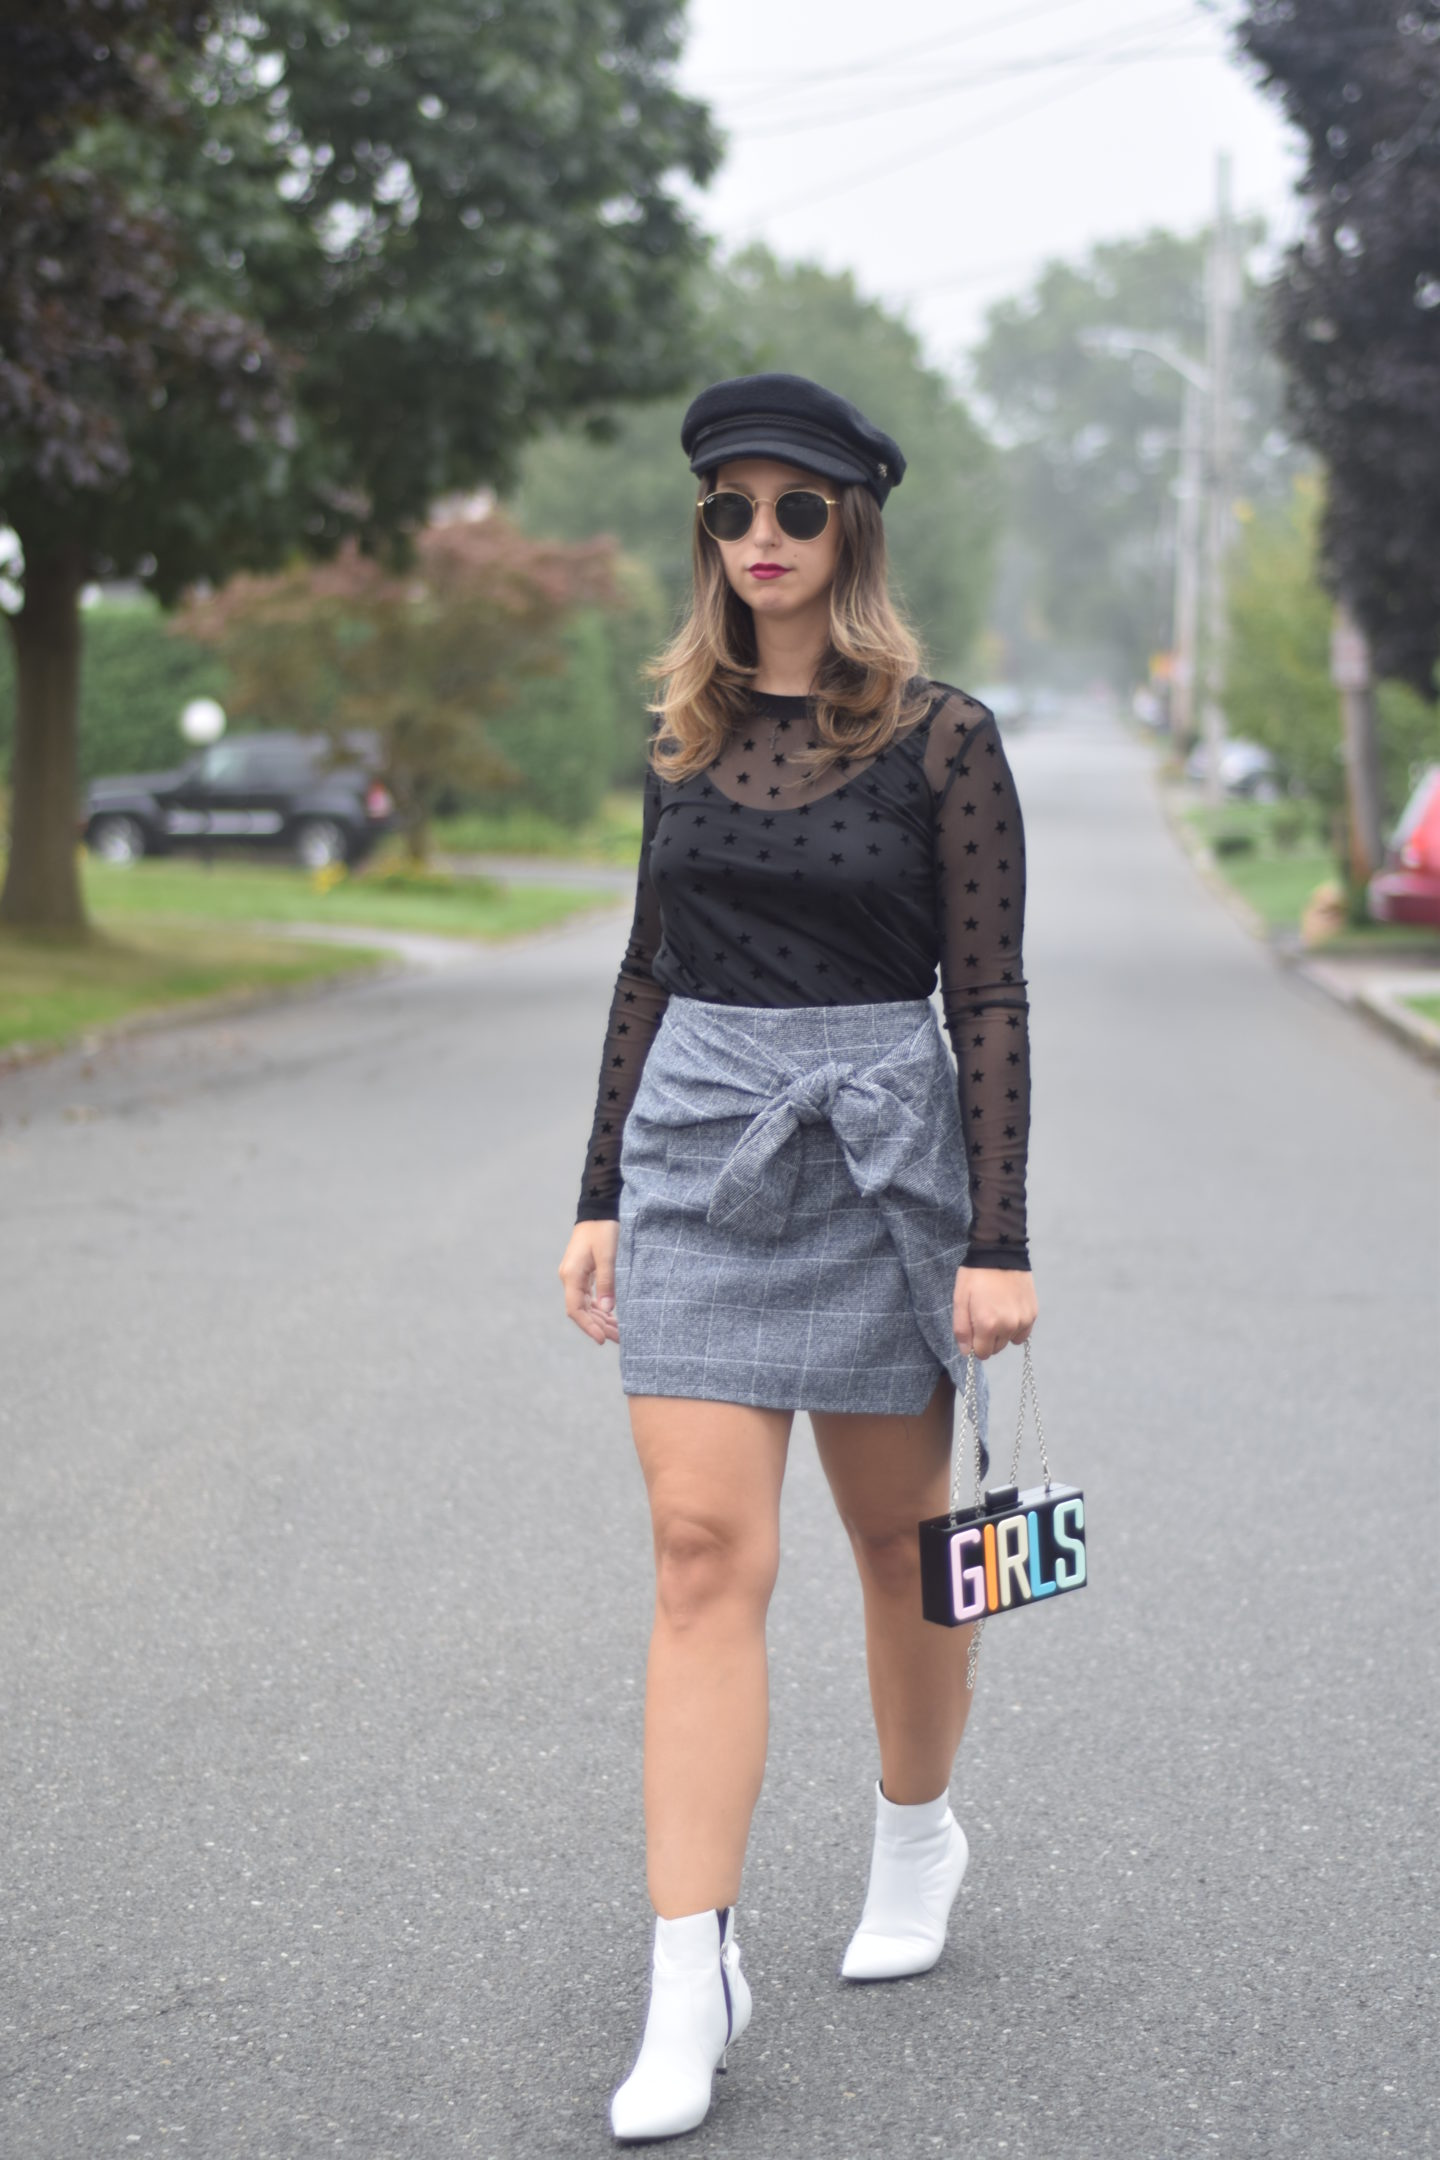 under 300-outfit-budget-street style